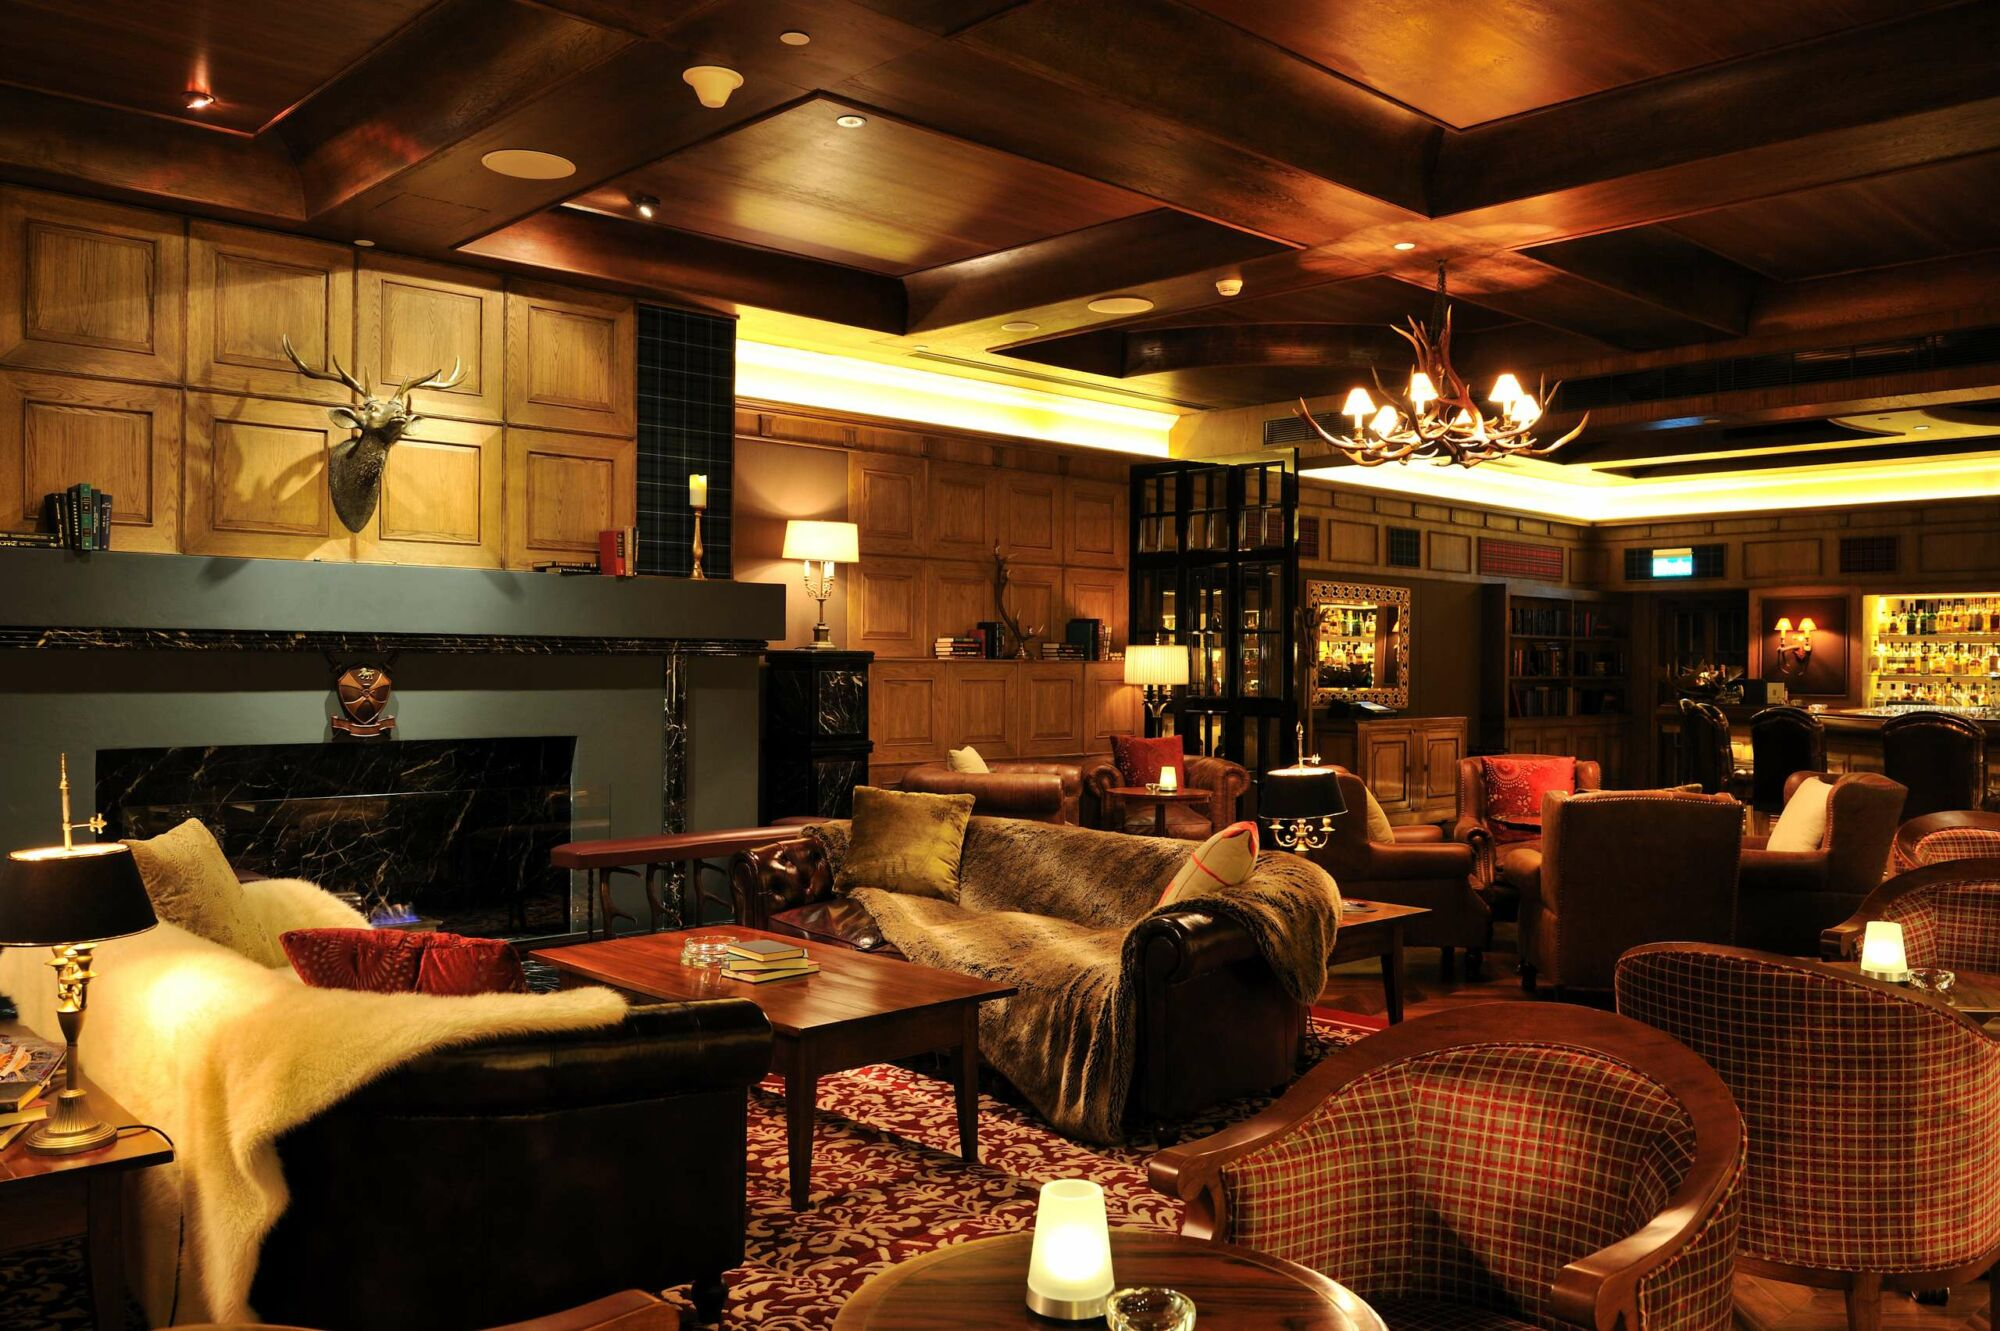 Macallan whisky bar lounge Instagrammable restaurants bars macau